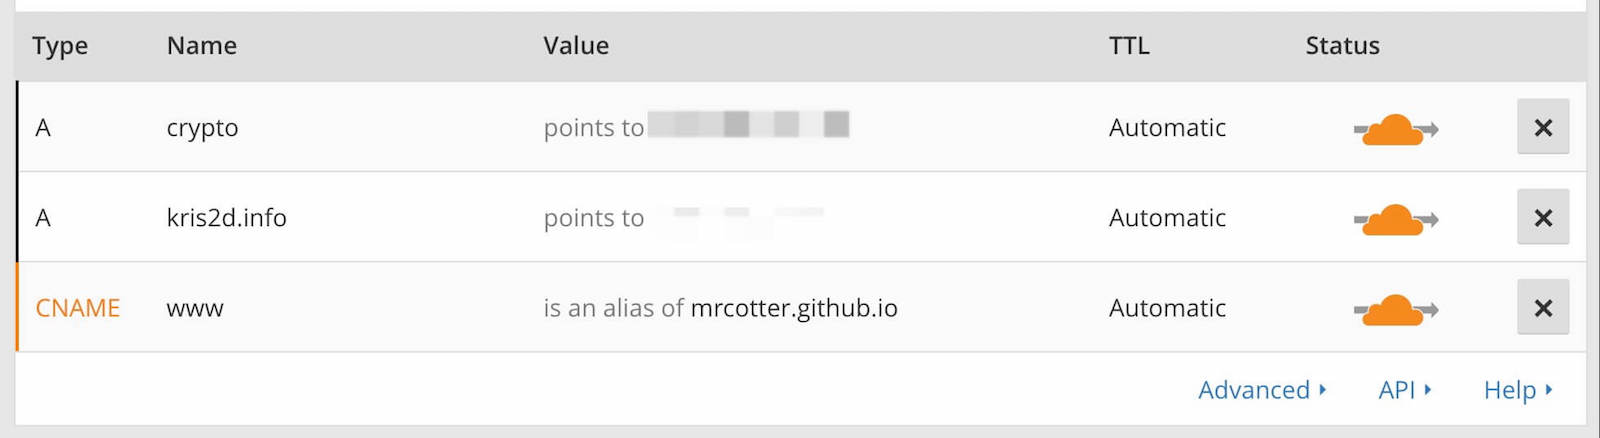 https-cloudflare-dns